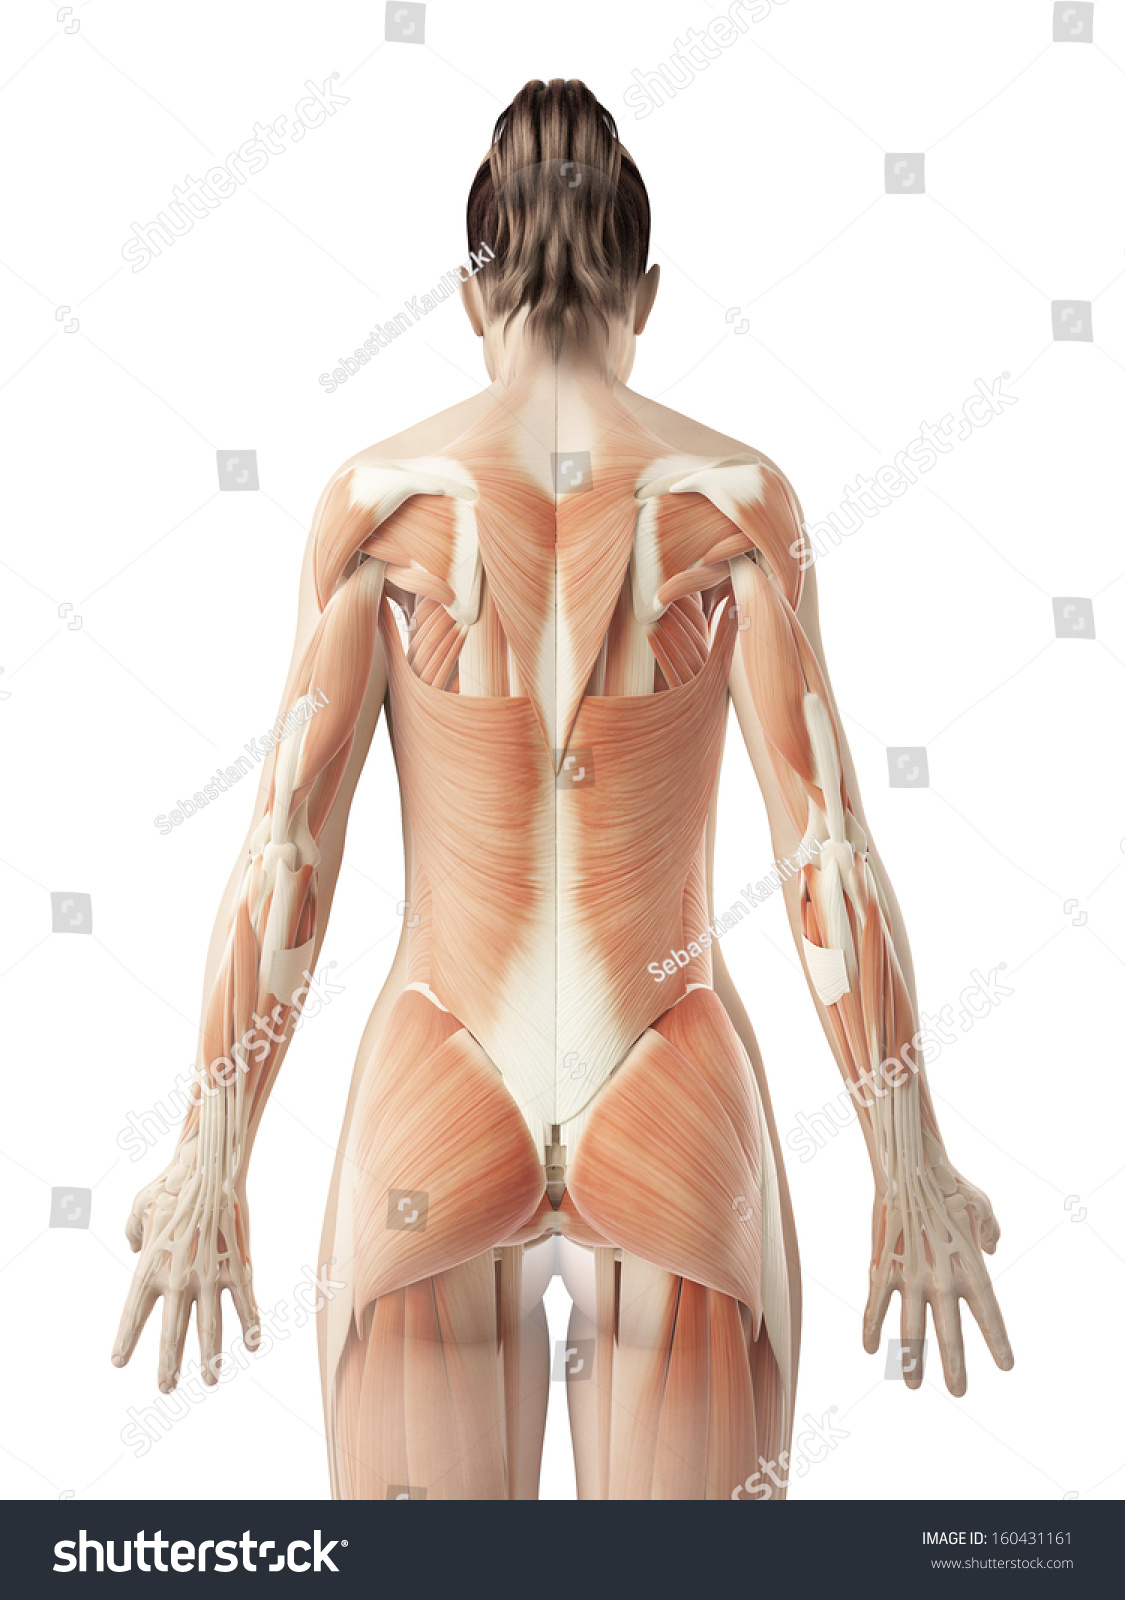 Female Back Muscles Stock Illustration 160431161 - Shutterstock